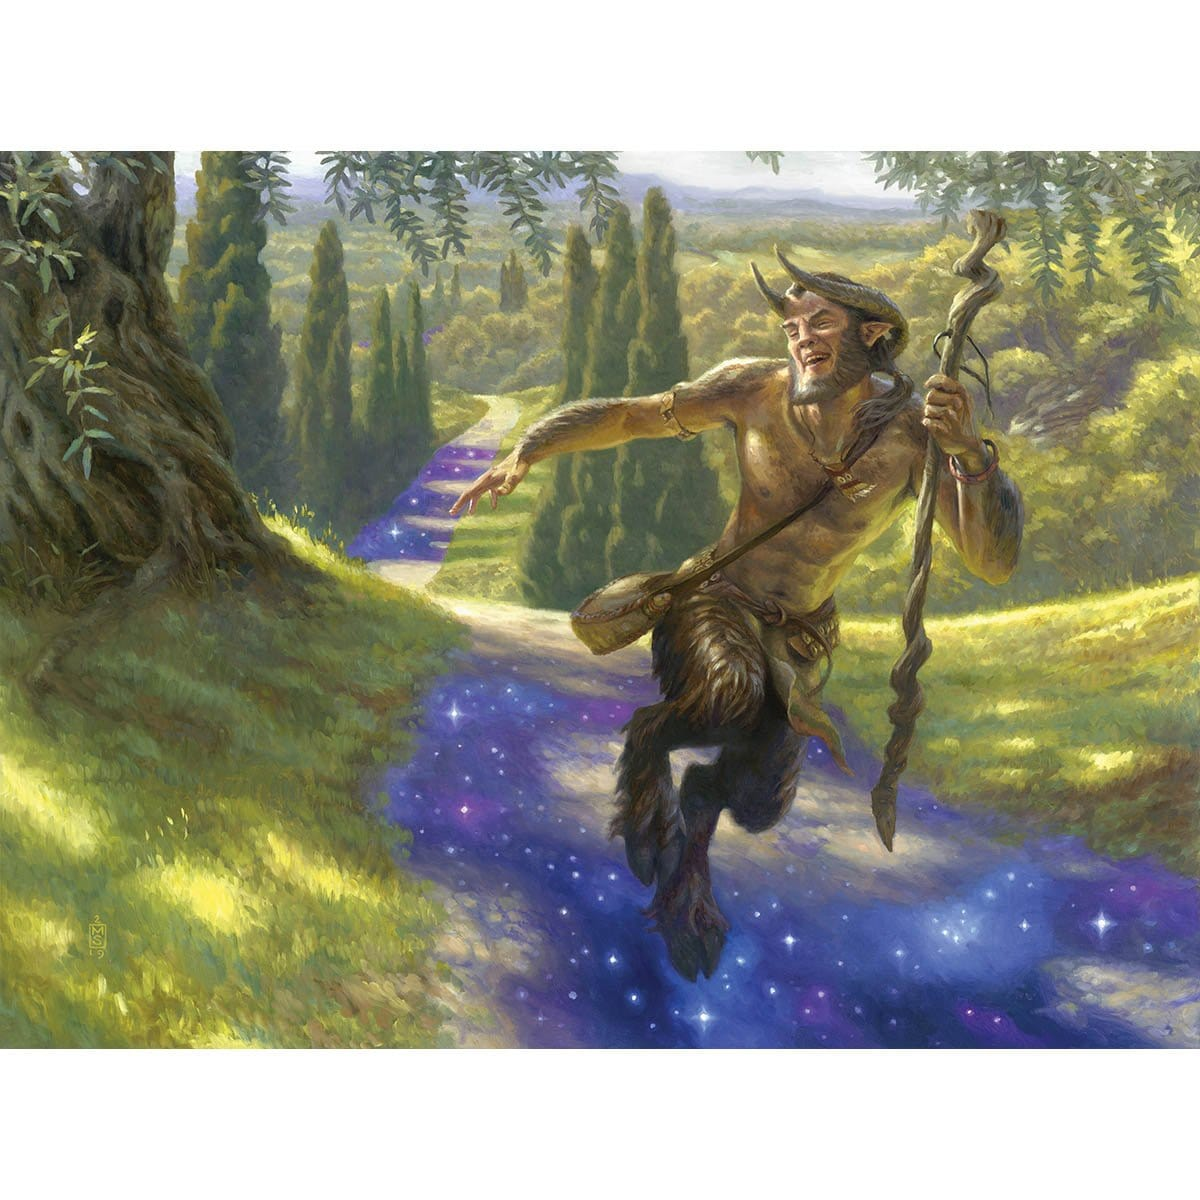 Nessian Wanderer Print - Print - Original Magic Art - Accessories for Magic the Gathering and other card games